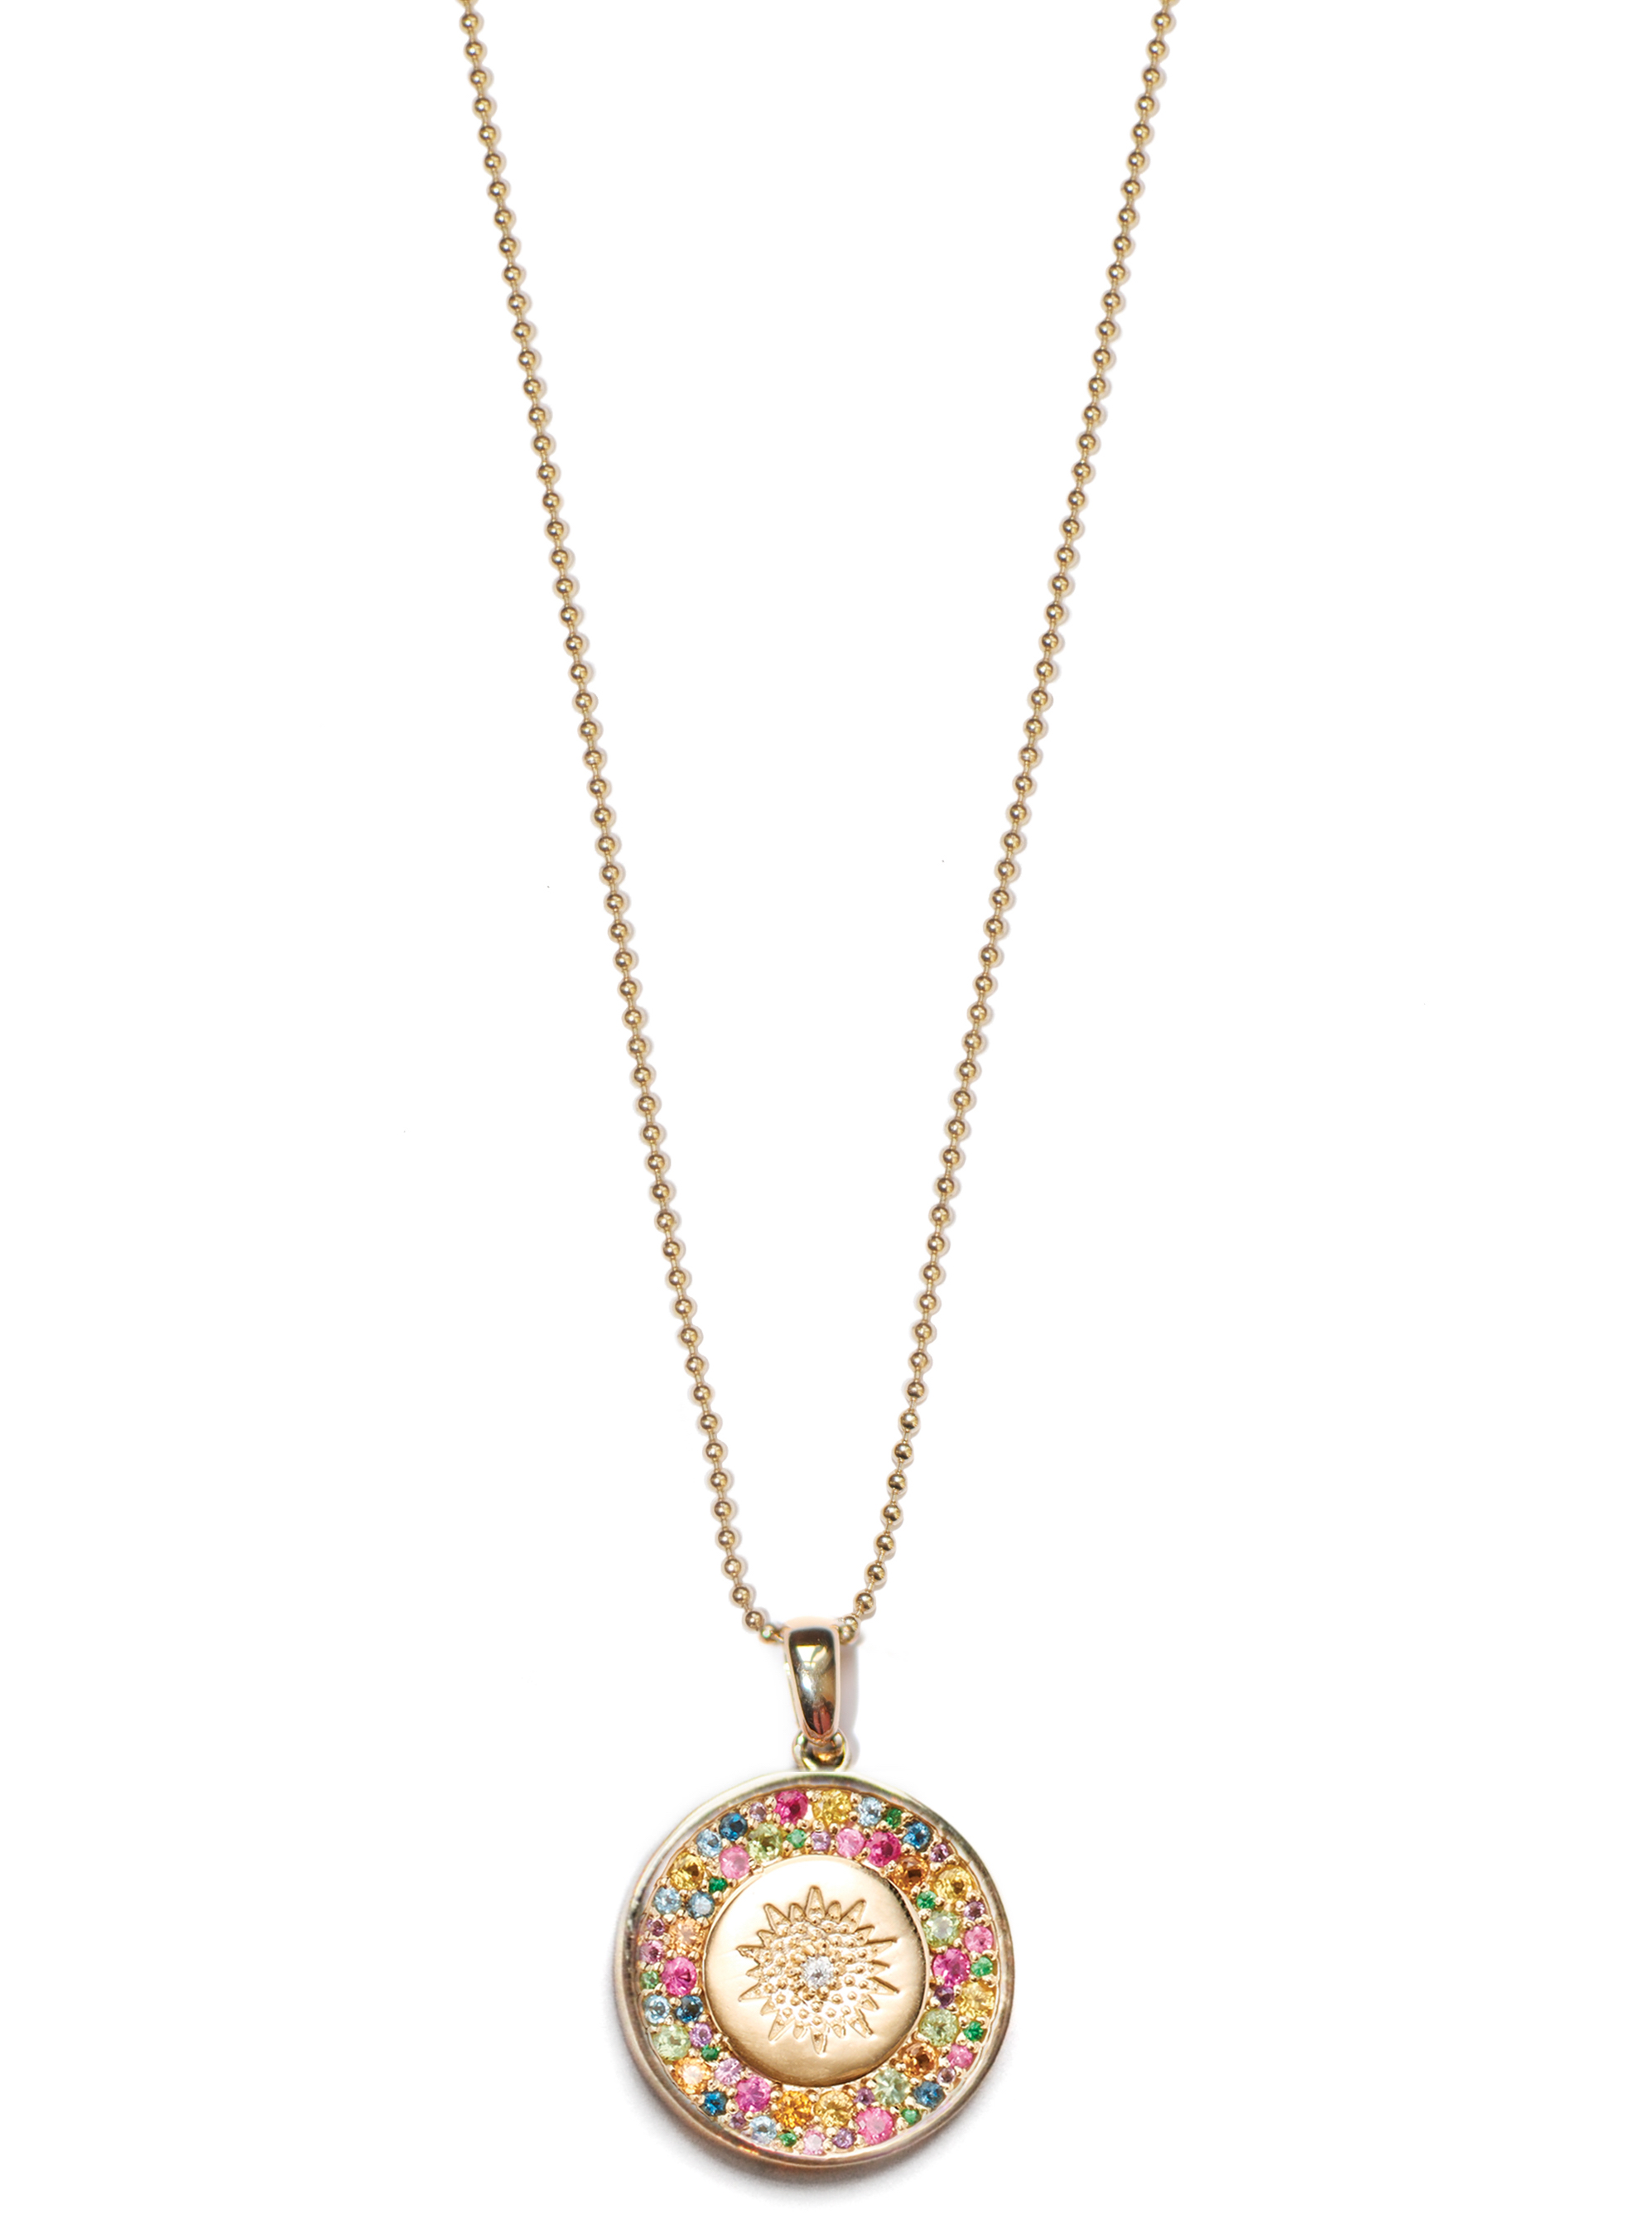 Anzie Classique Royale Milly pendant | JCK On Your Market